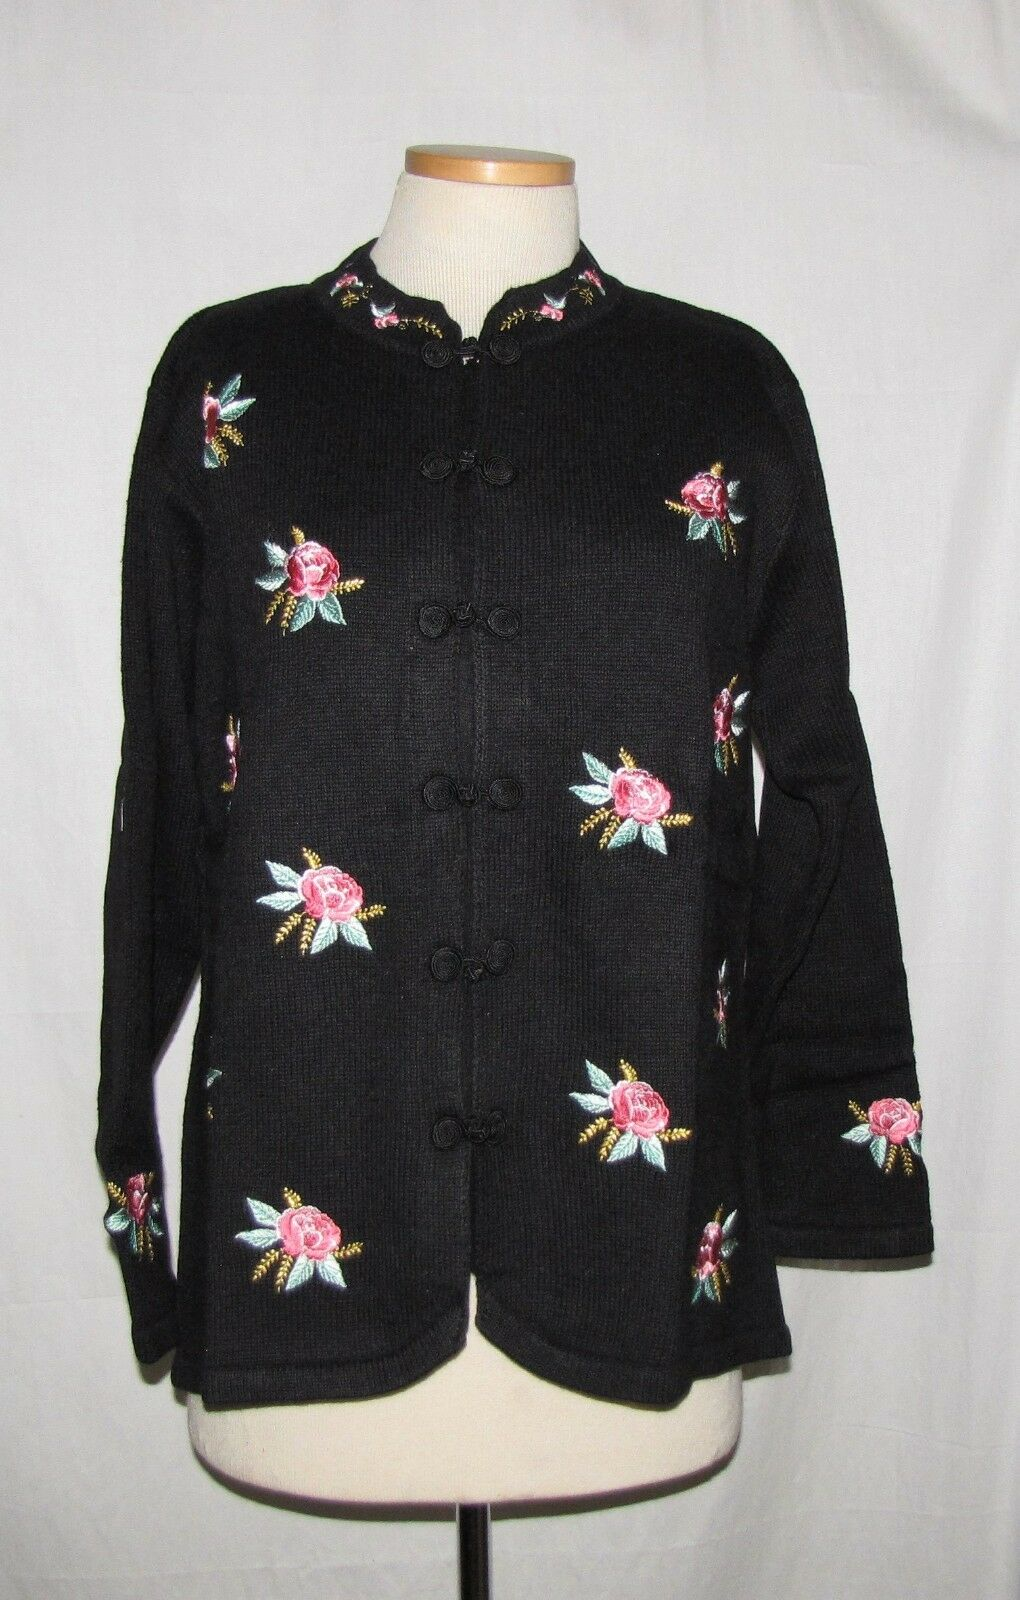 Storybook Knits  Mandarin Flowers  Blk w Embroidered Floral Design Sweater L NWT